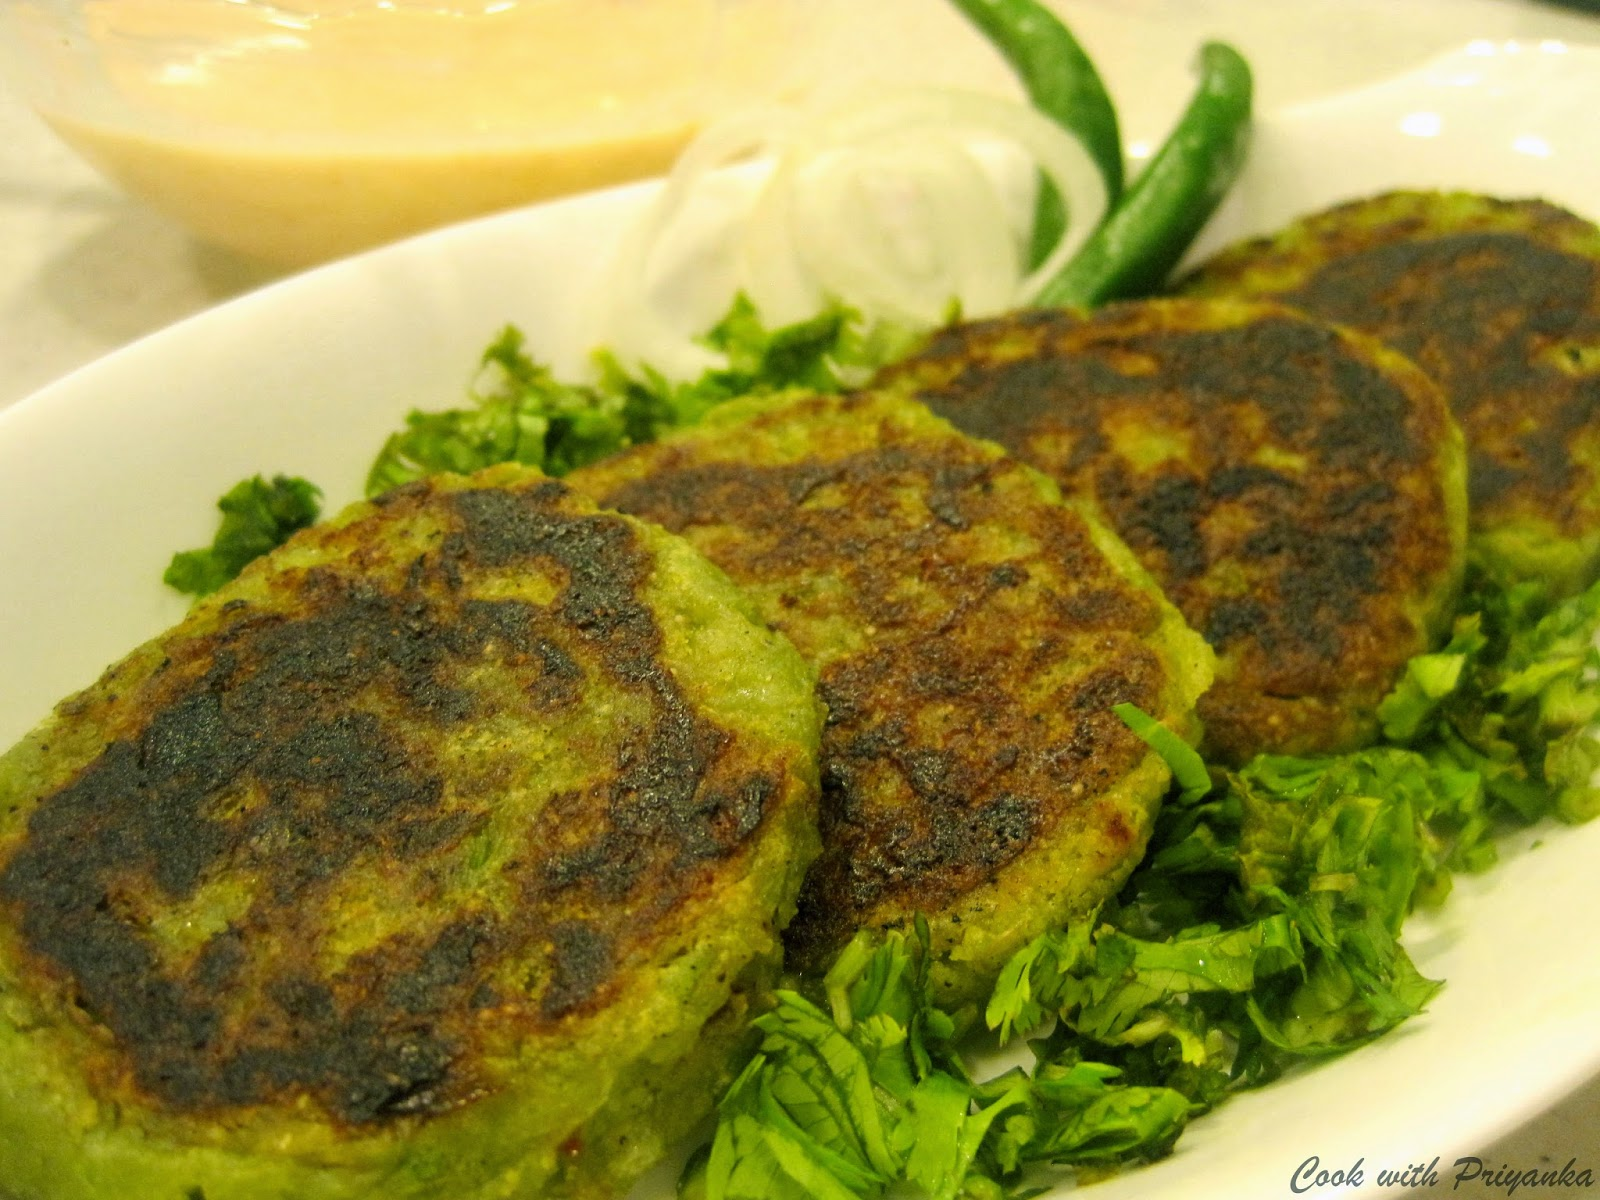 http://cookwithpriyankavarma.blogspot.co.uk/2014/04/avocado-kebabs.html